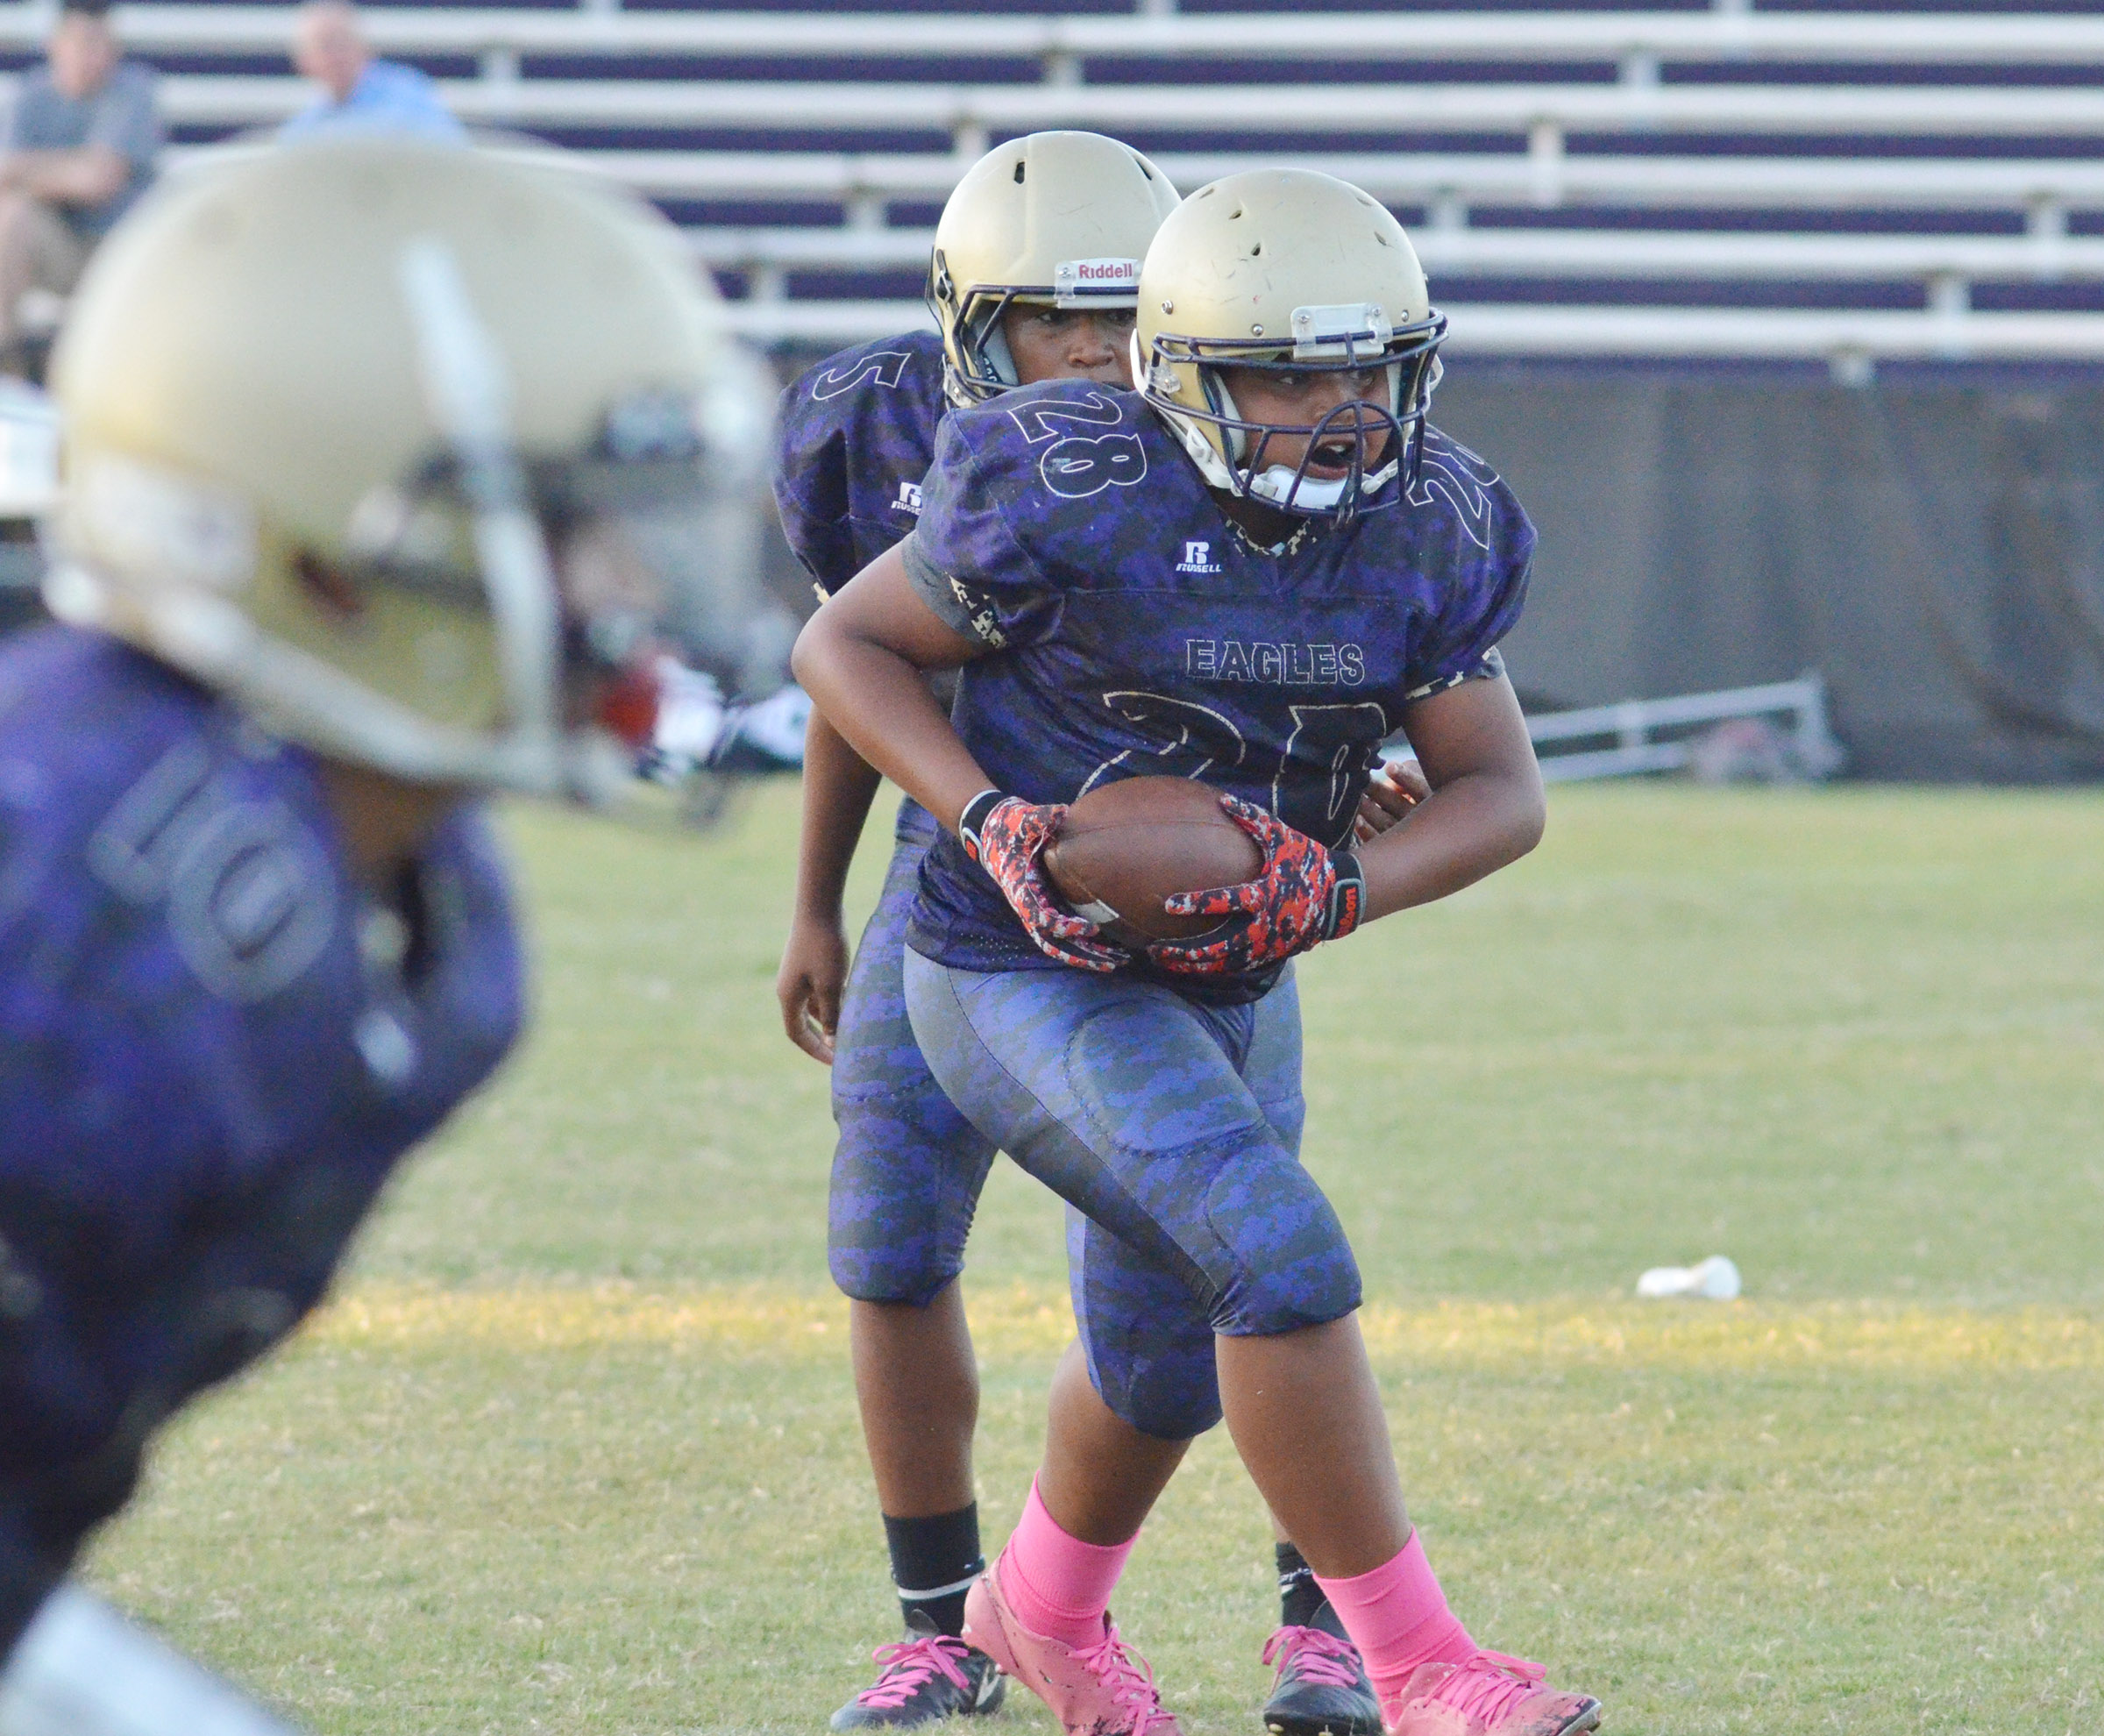 CMS seventh-grader Keondre Weathers gets the ball.